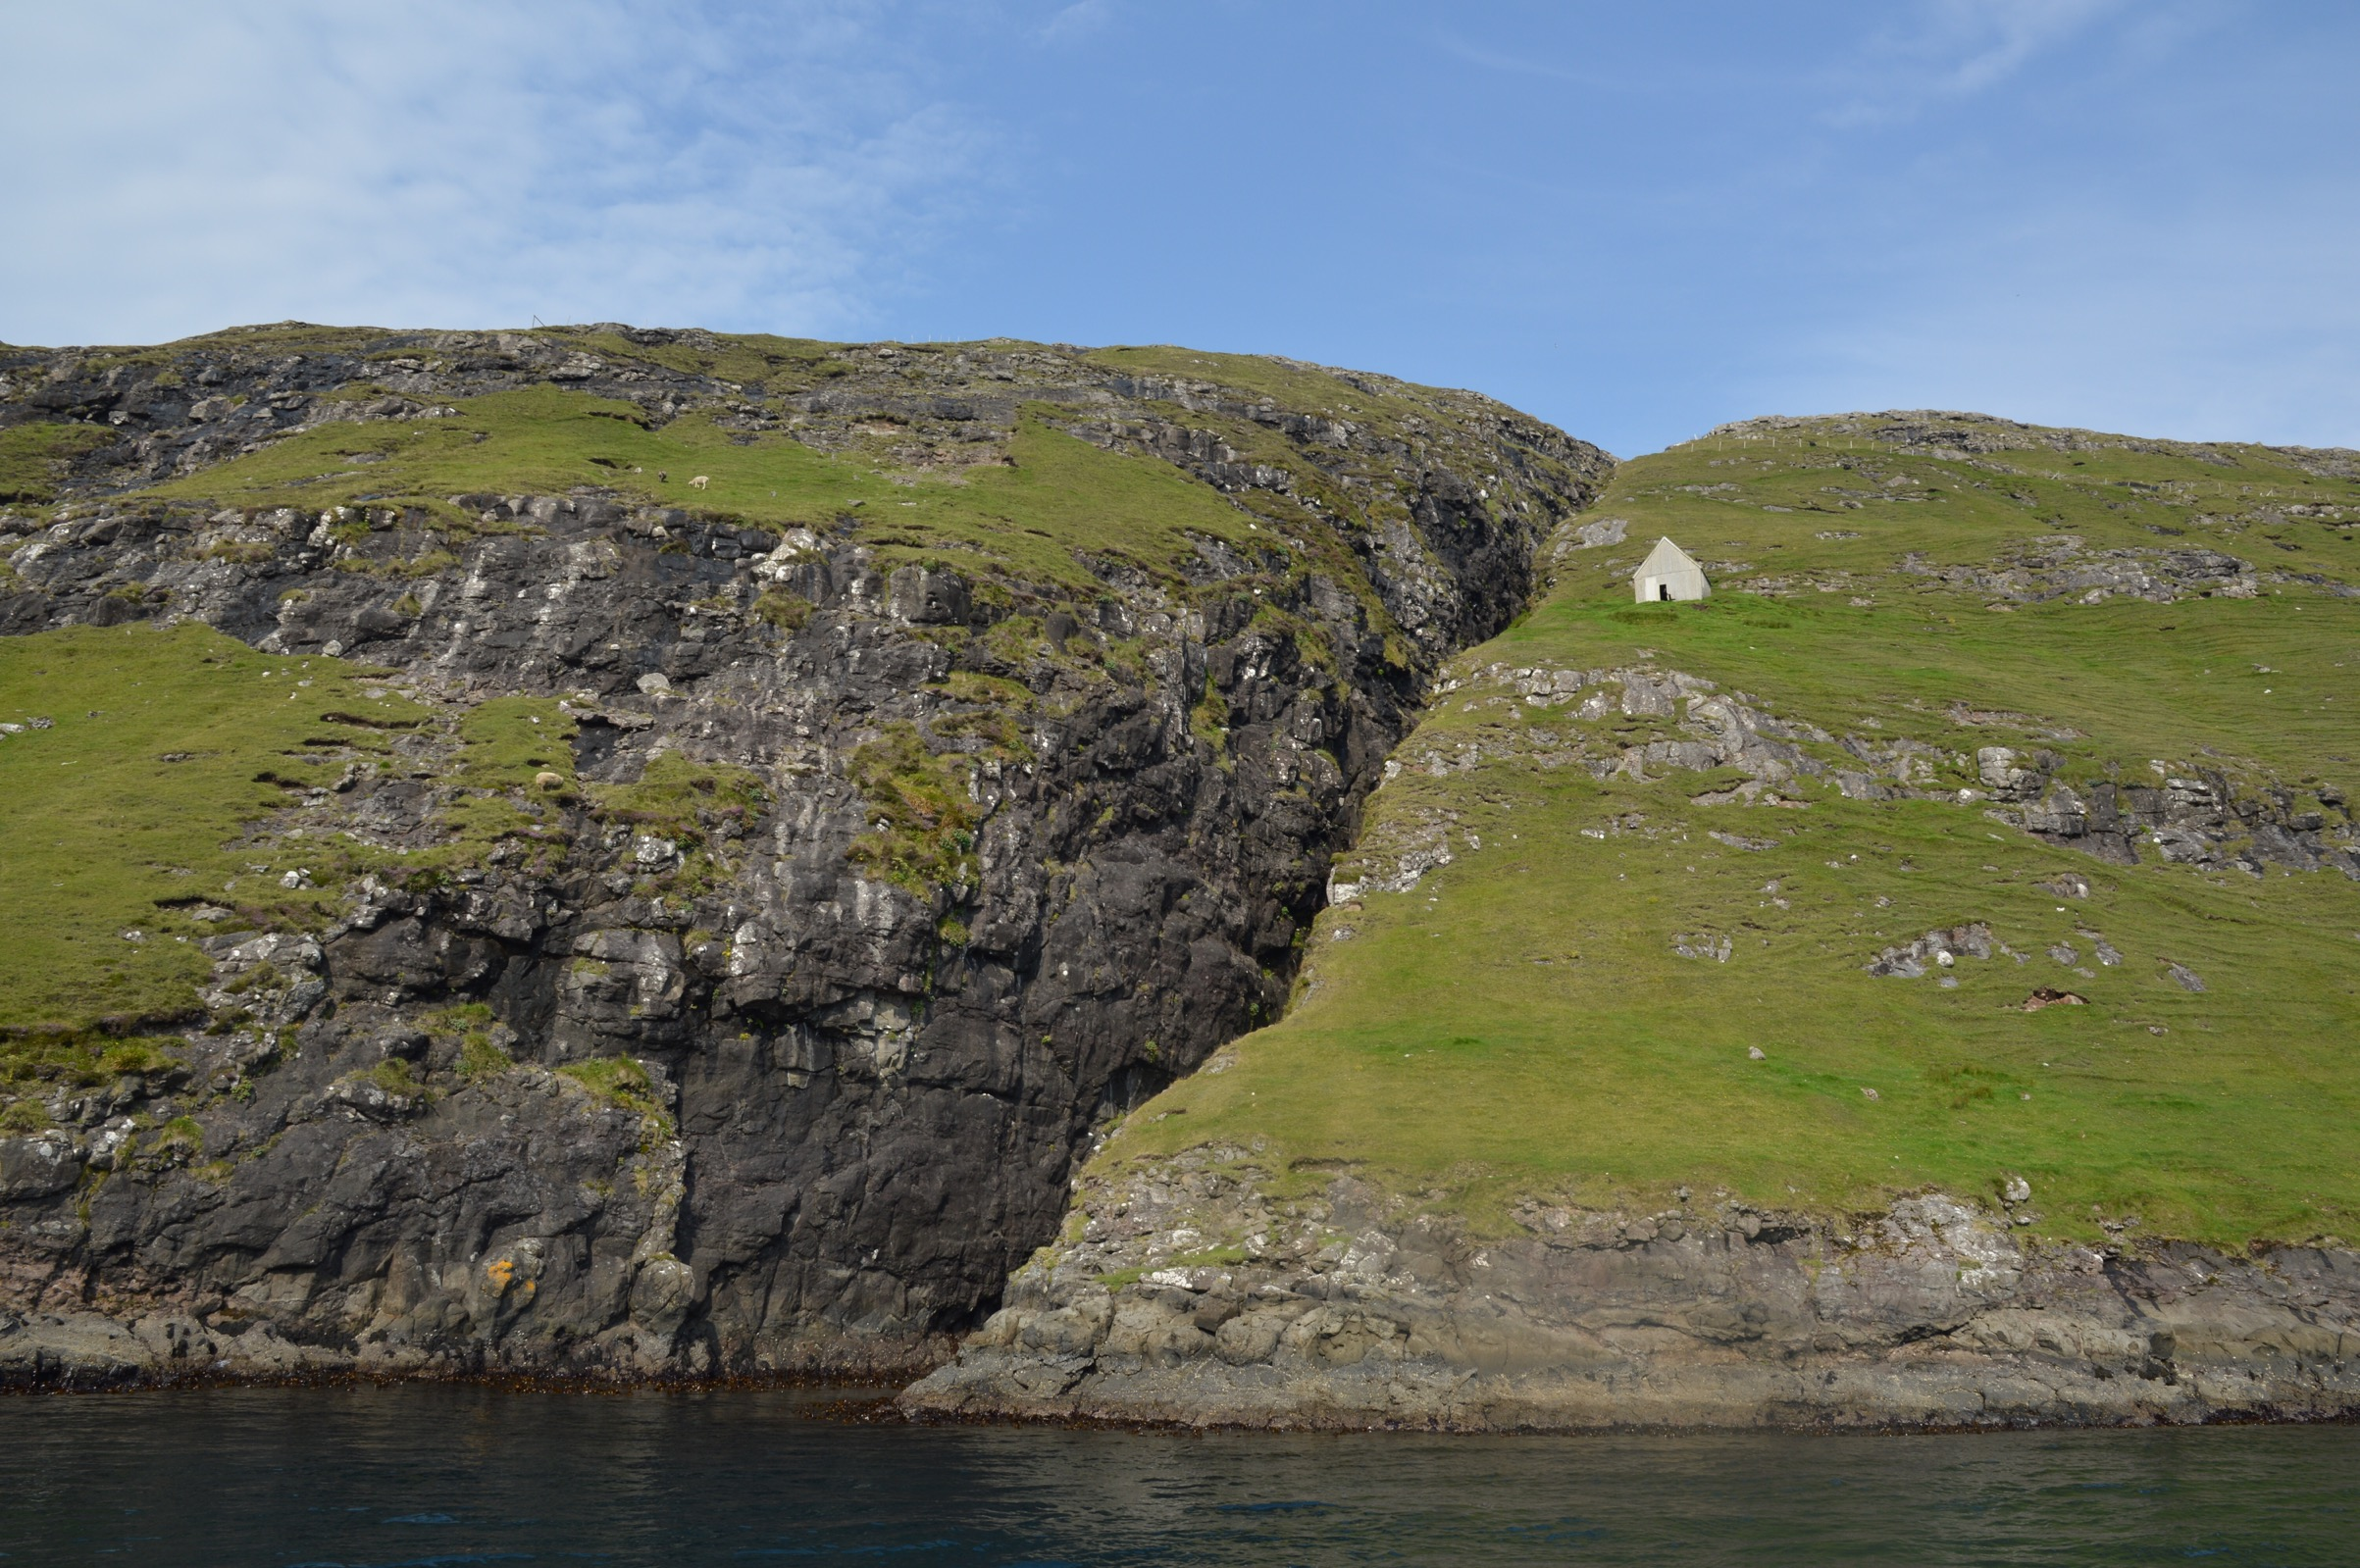 One of the pricier stops on our round the world trip: Vestmanna, Streymoy, Faroe Islands